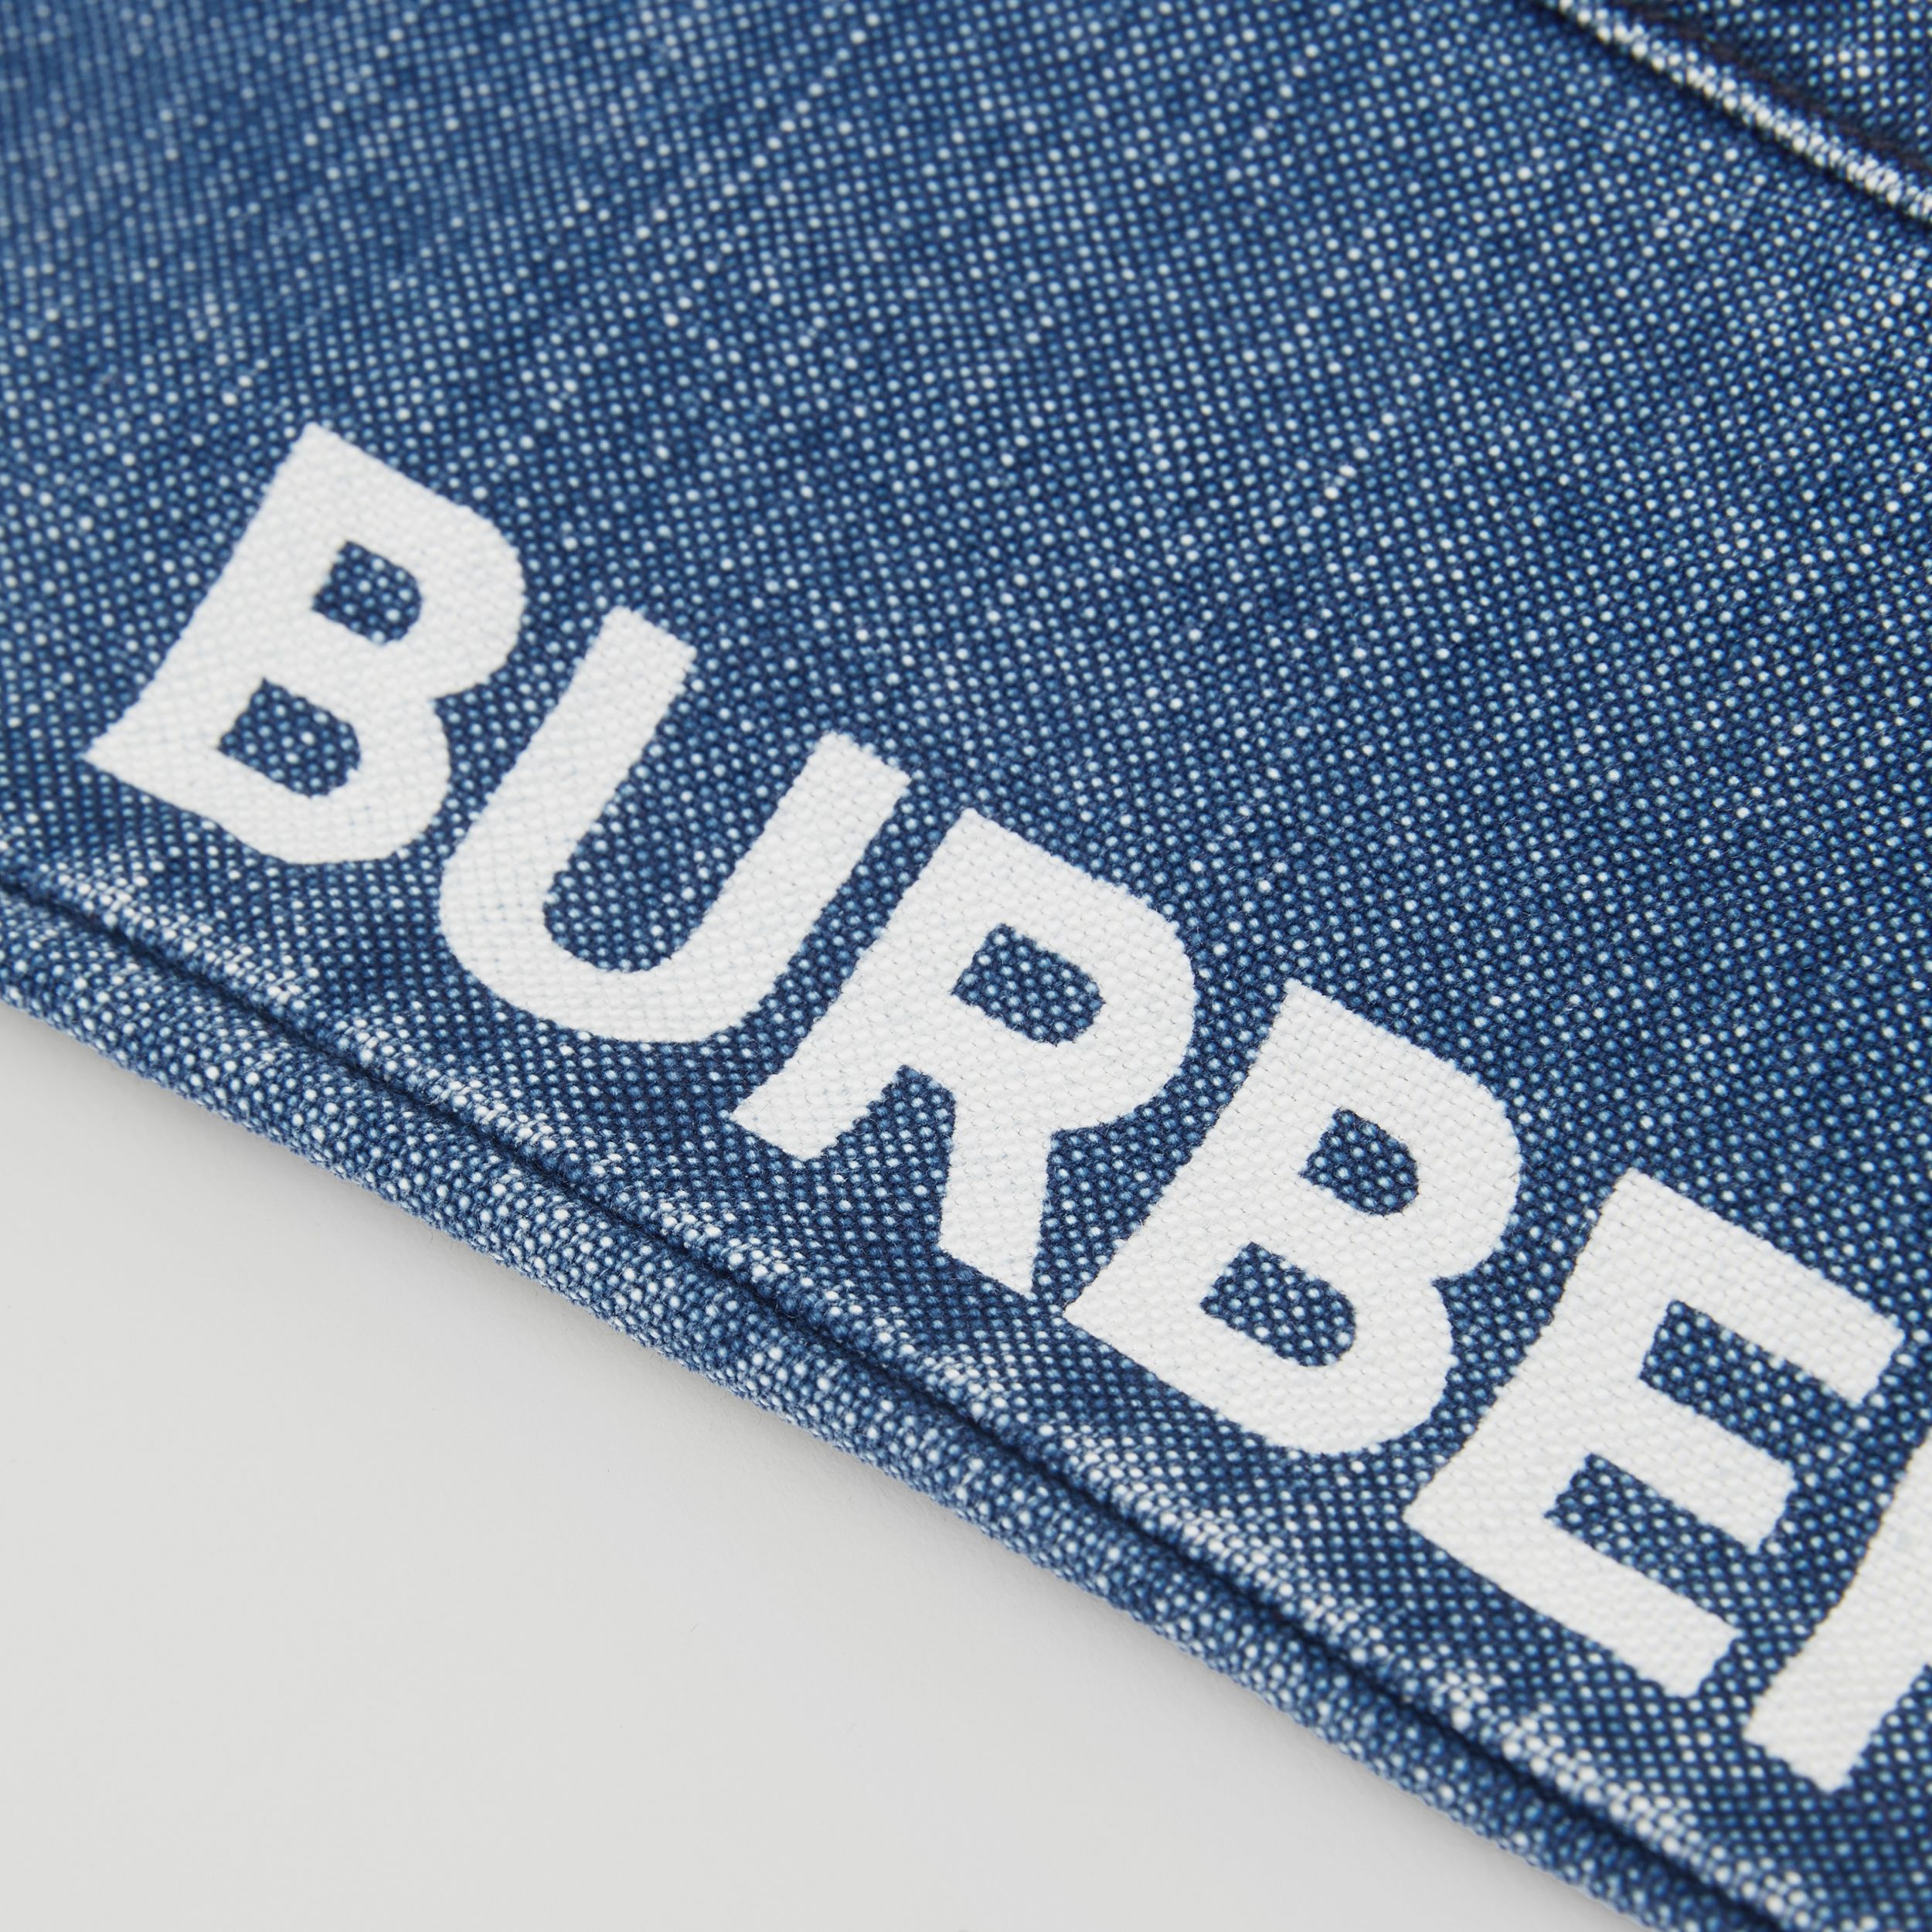 Logo Print Japanese Denim Jeans in Indigo - Children | Burberry - 2